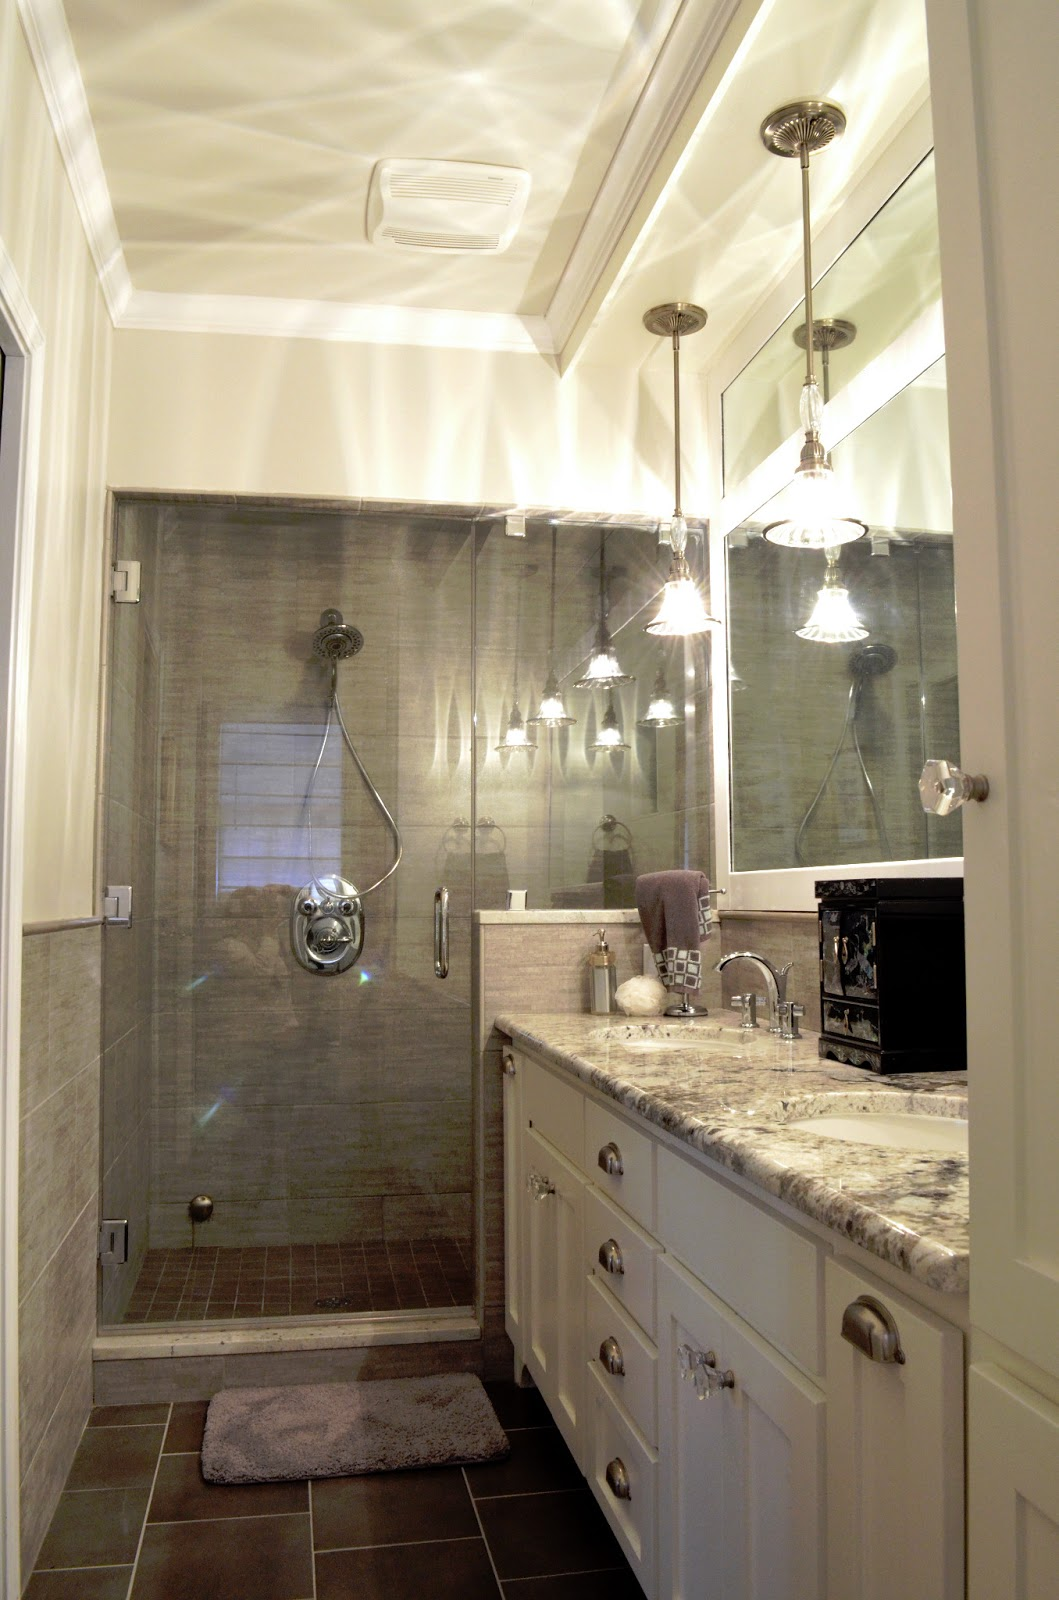 Home design trends the transitional design style - What is a transitional home ...